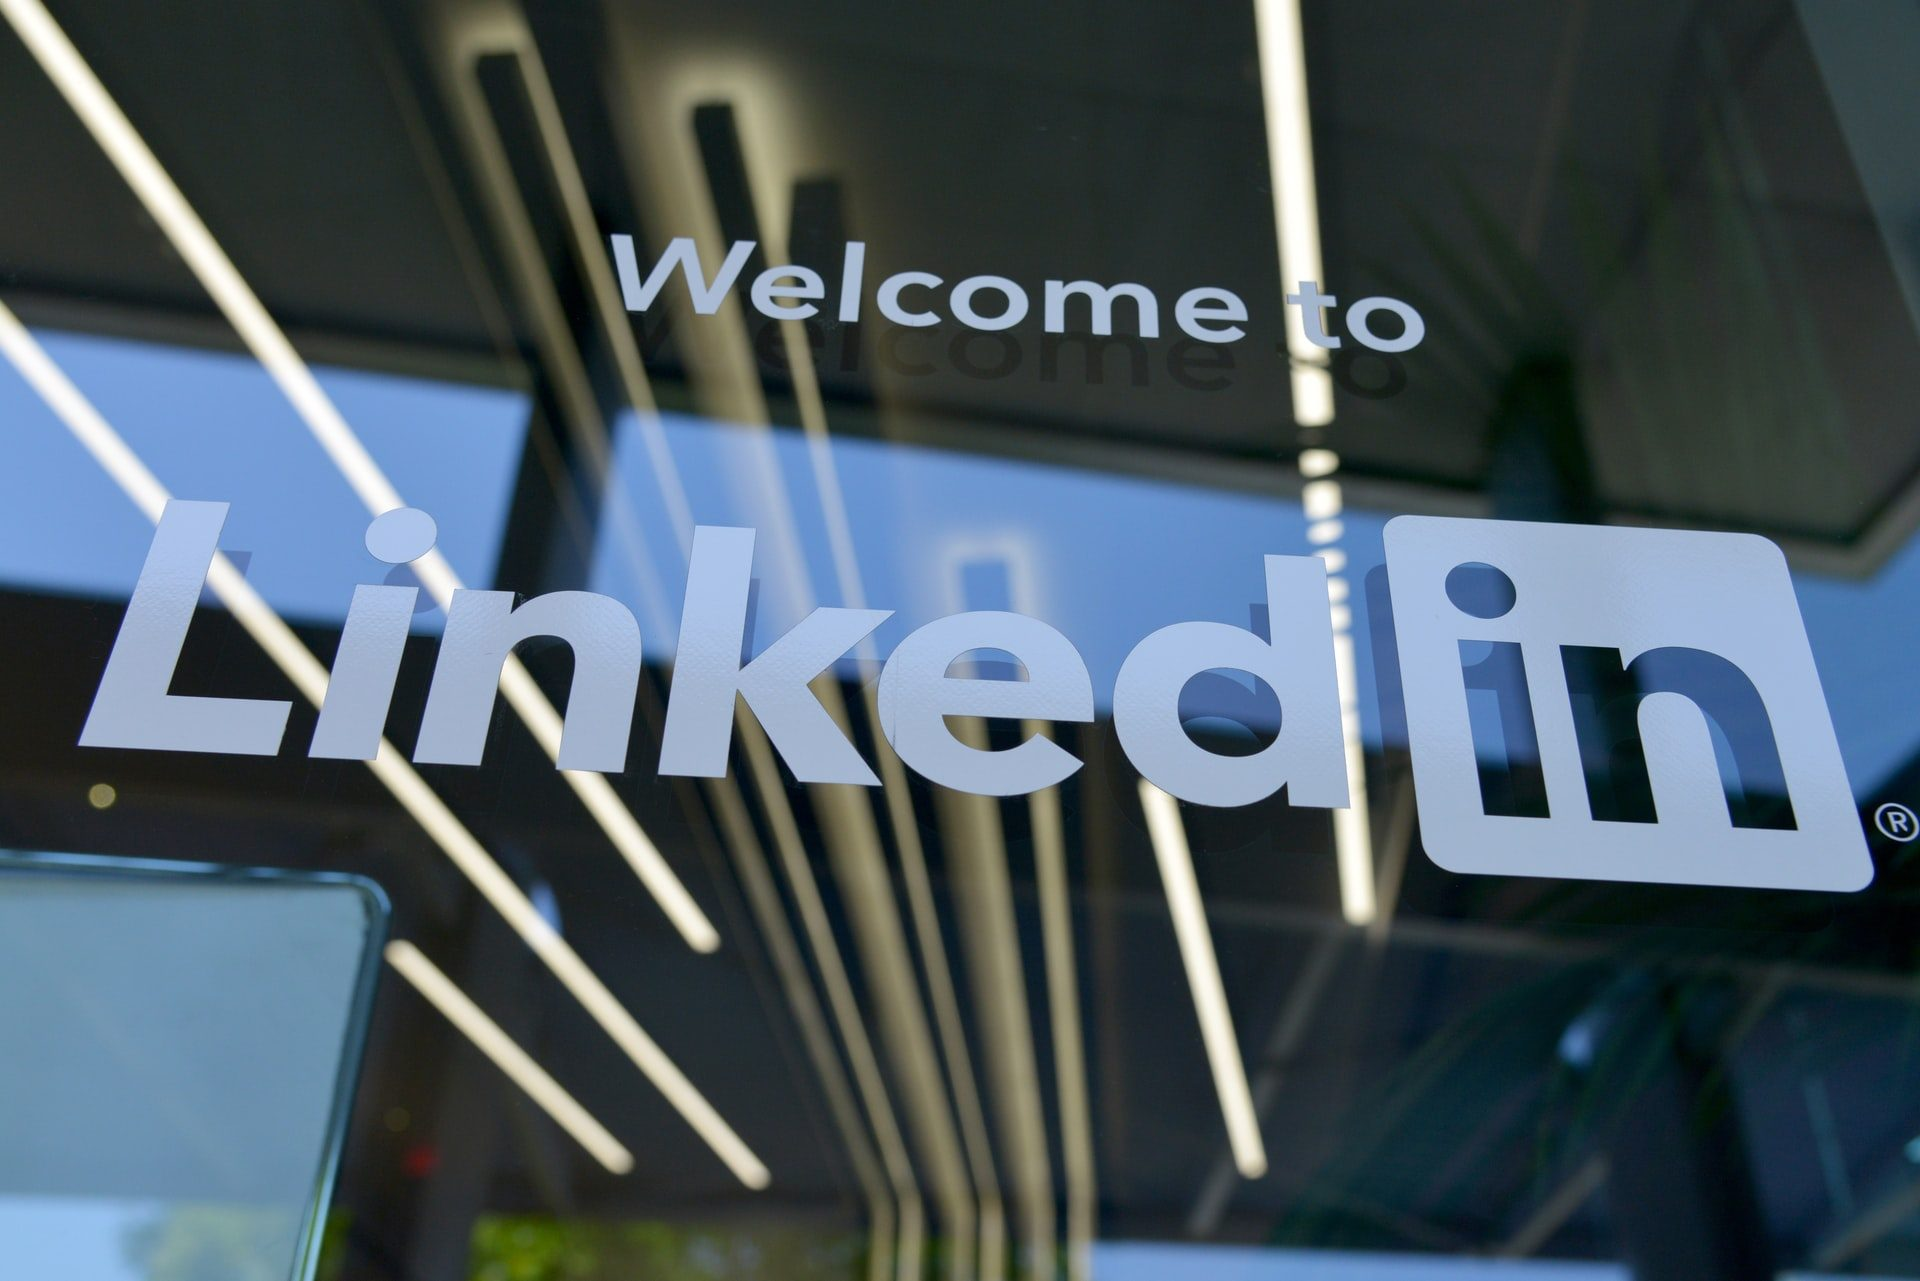 Dal lockdown a LinkedIn, l'identità è digitale